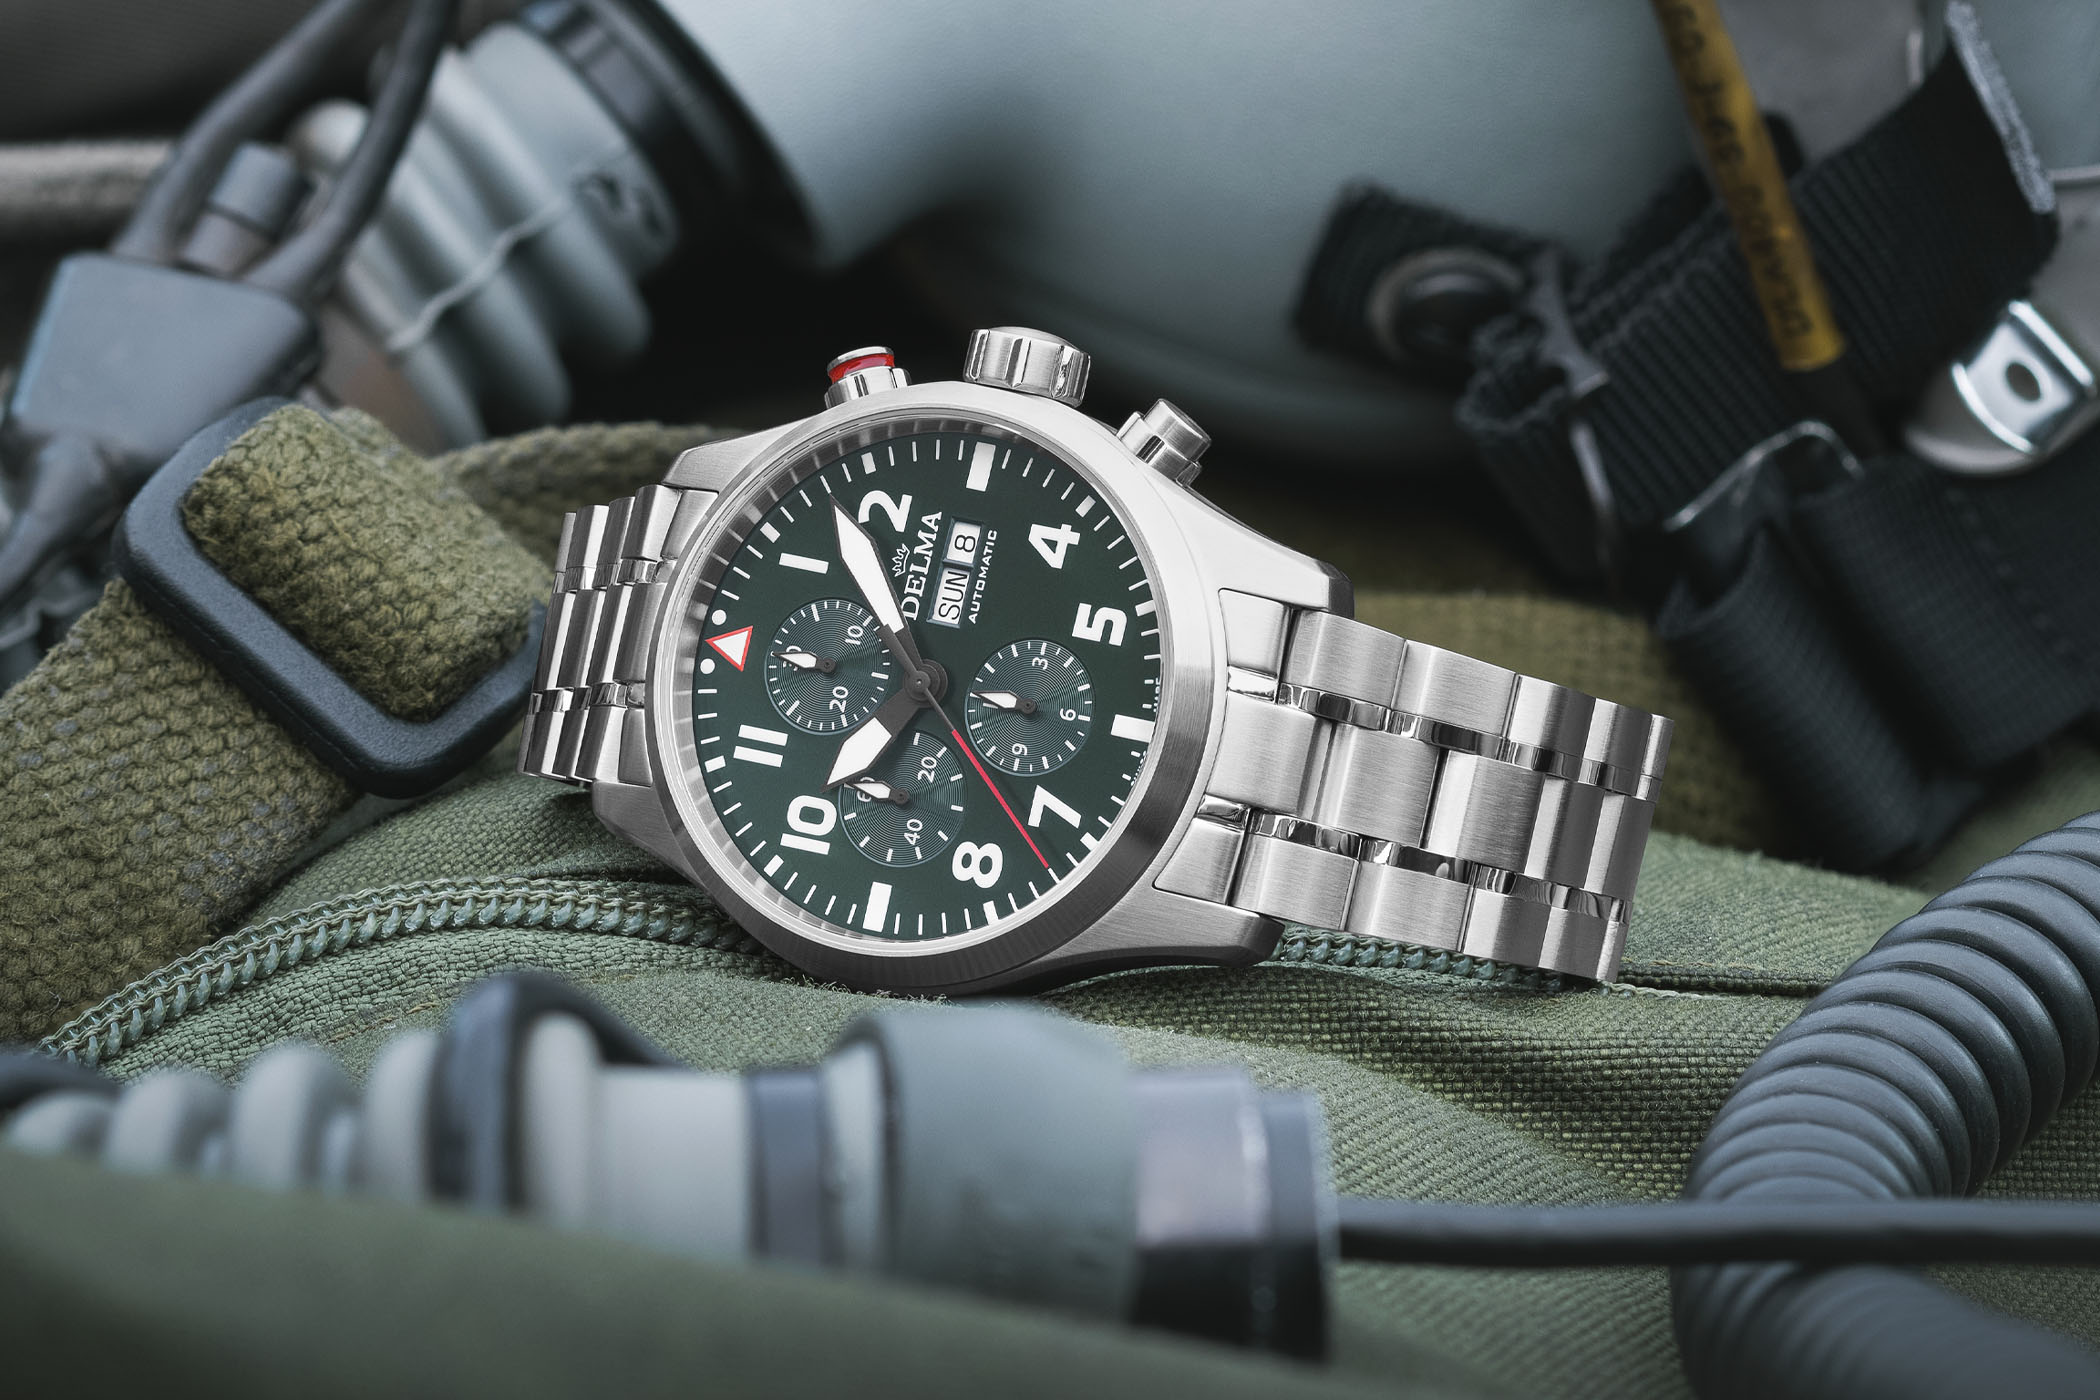 Introducing - Delma Commander 3-Hand, Big Date and Chronograph